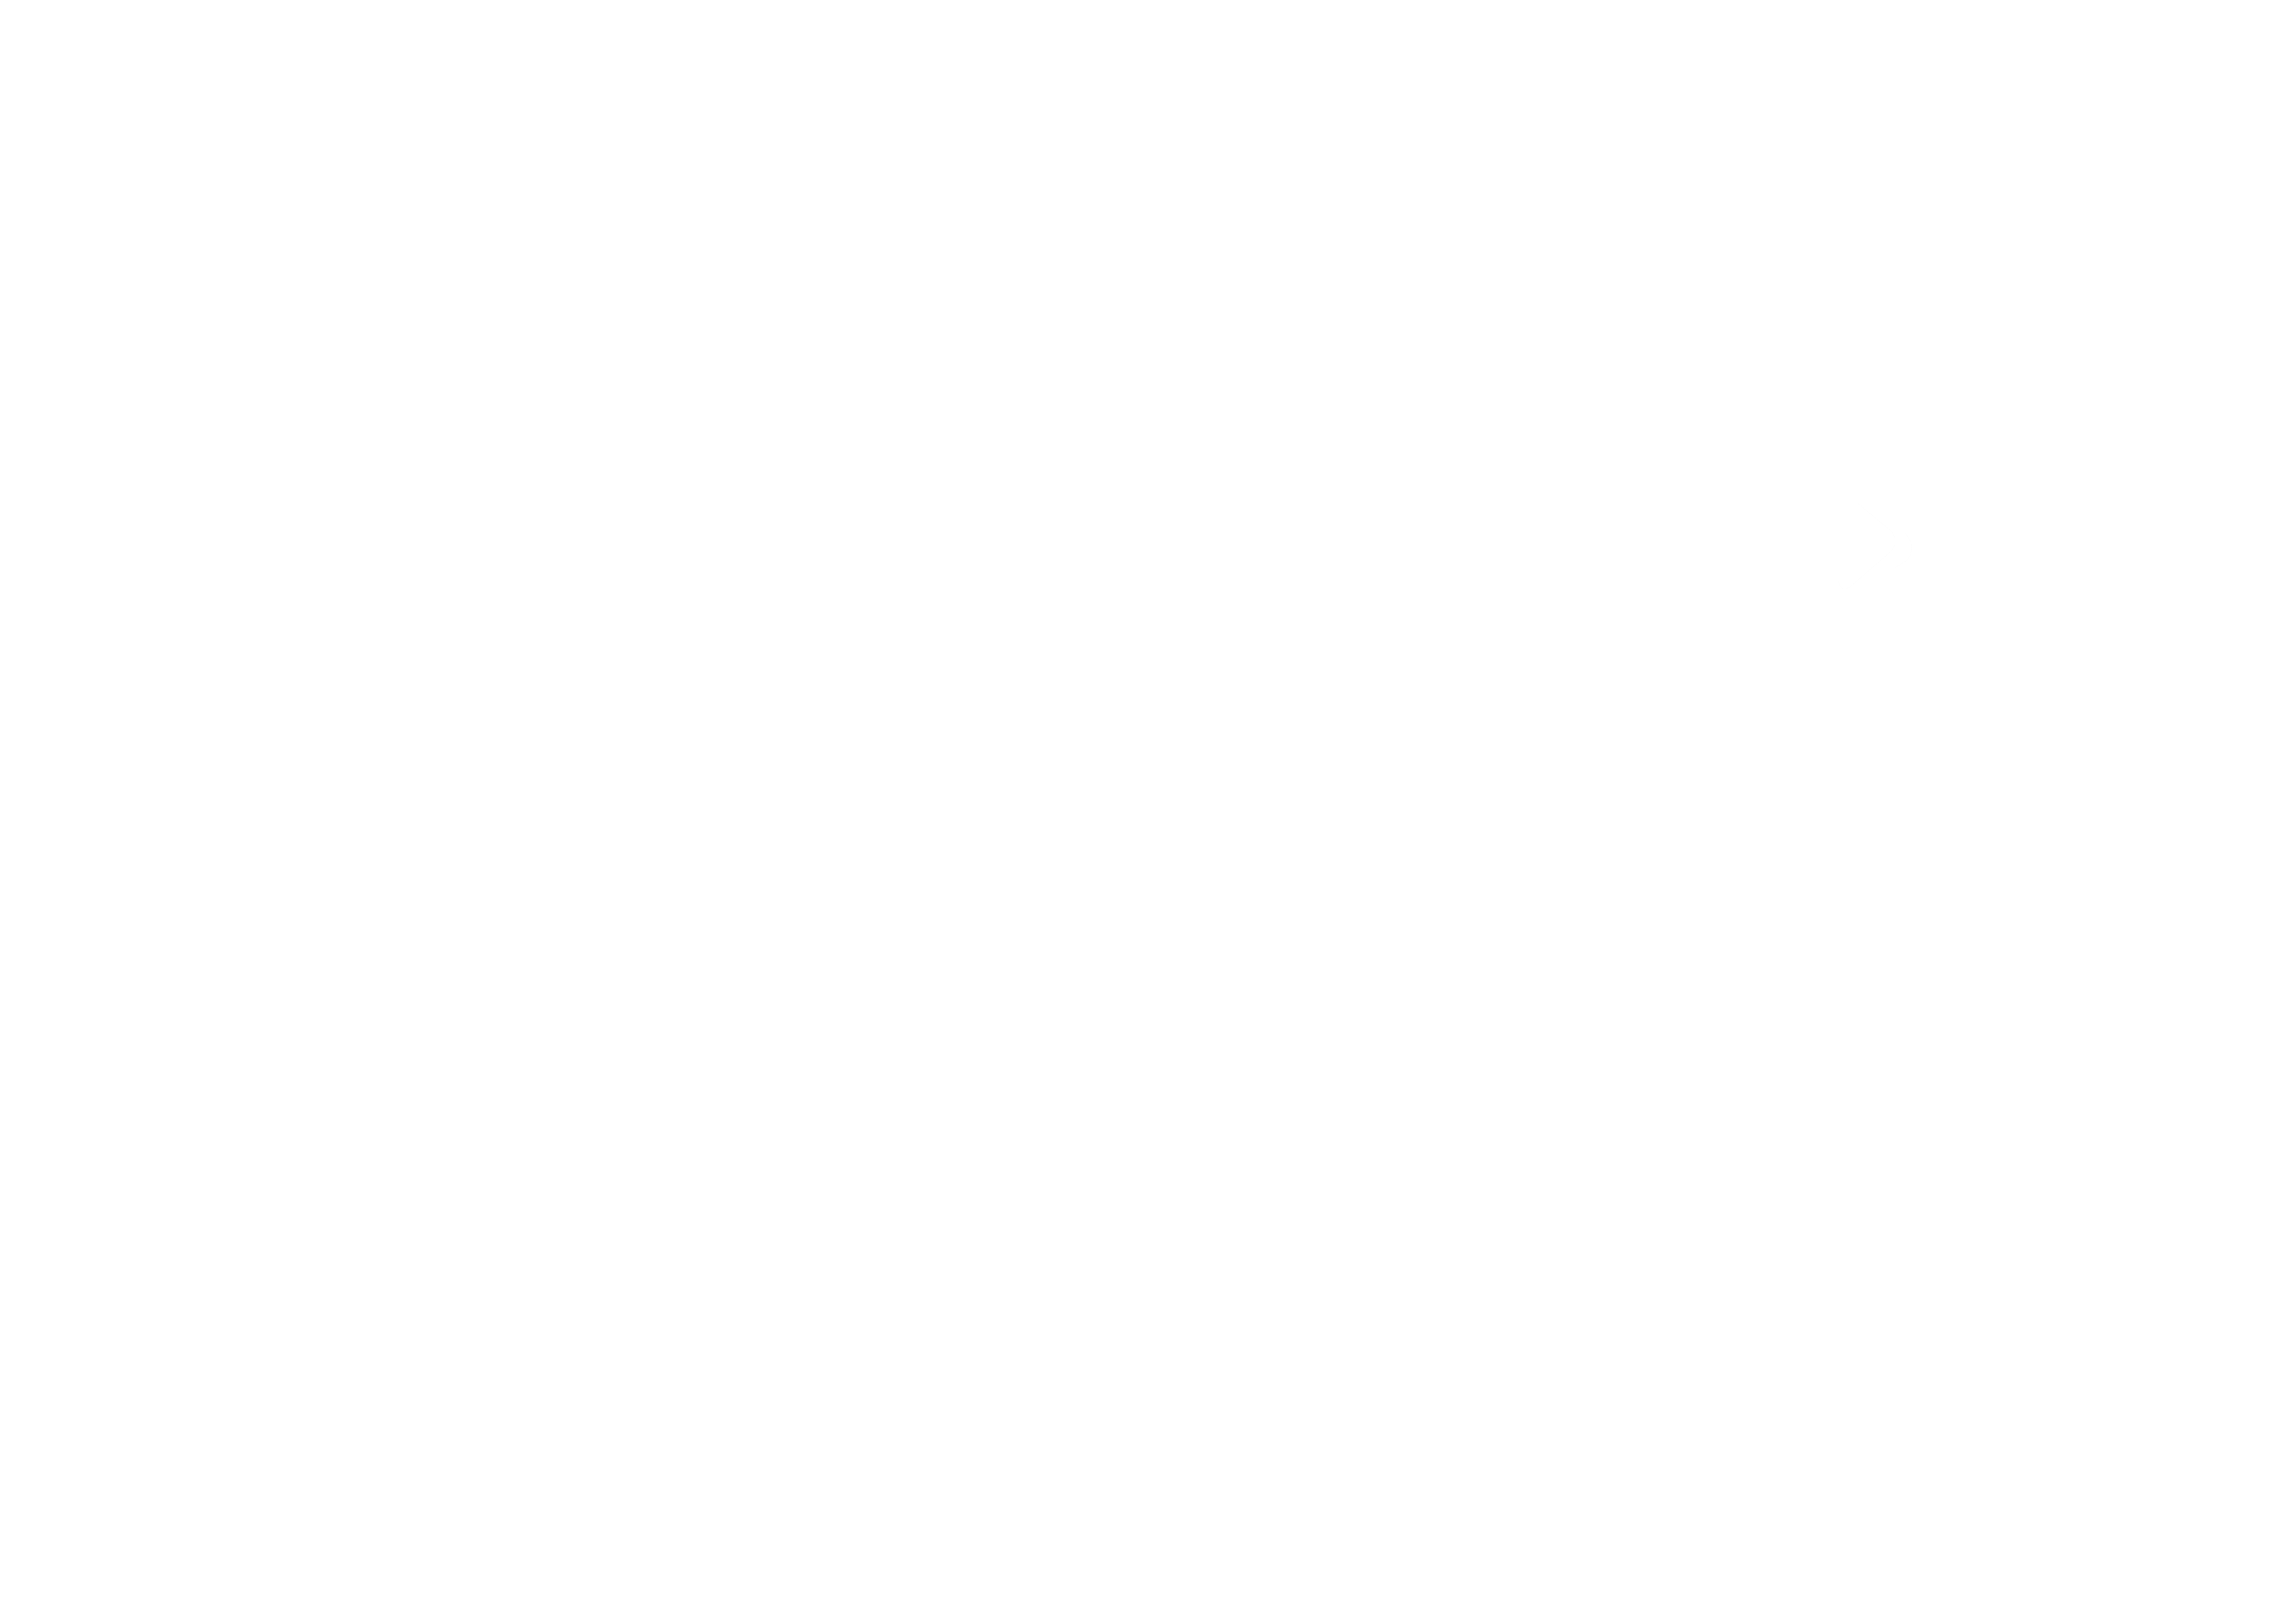 Night Auditors of America